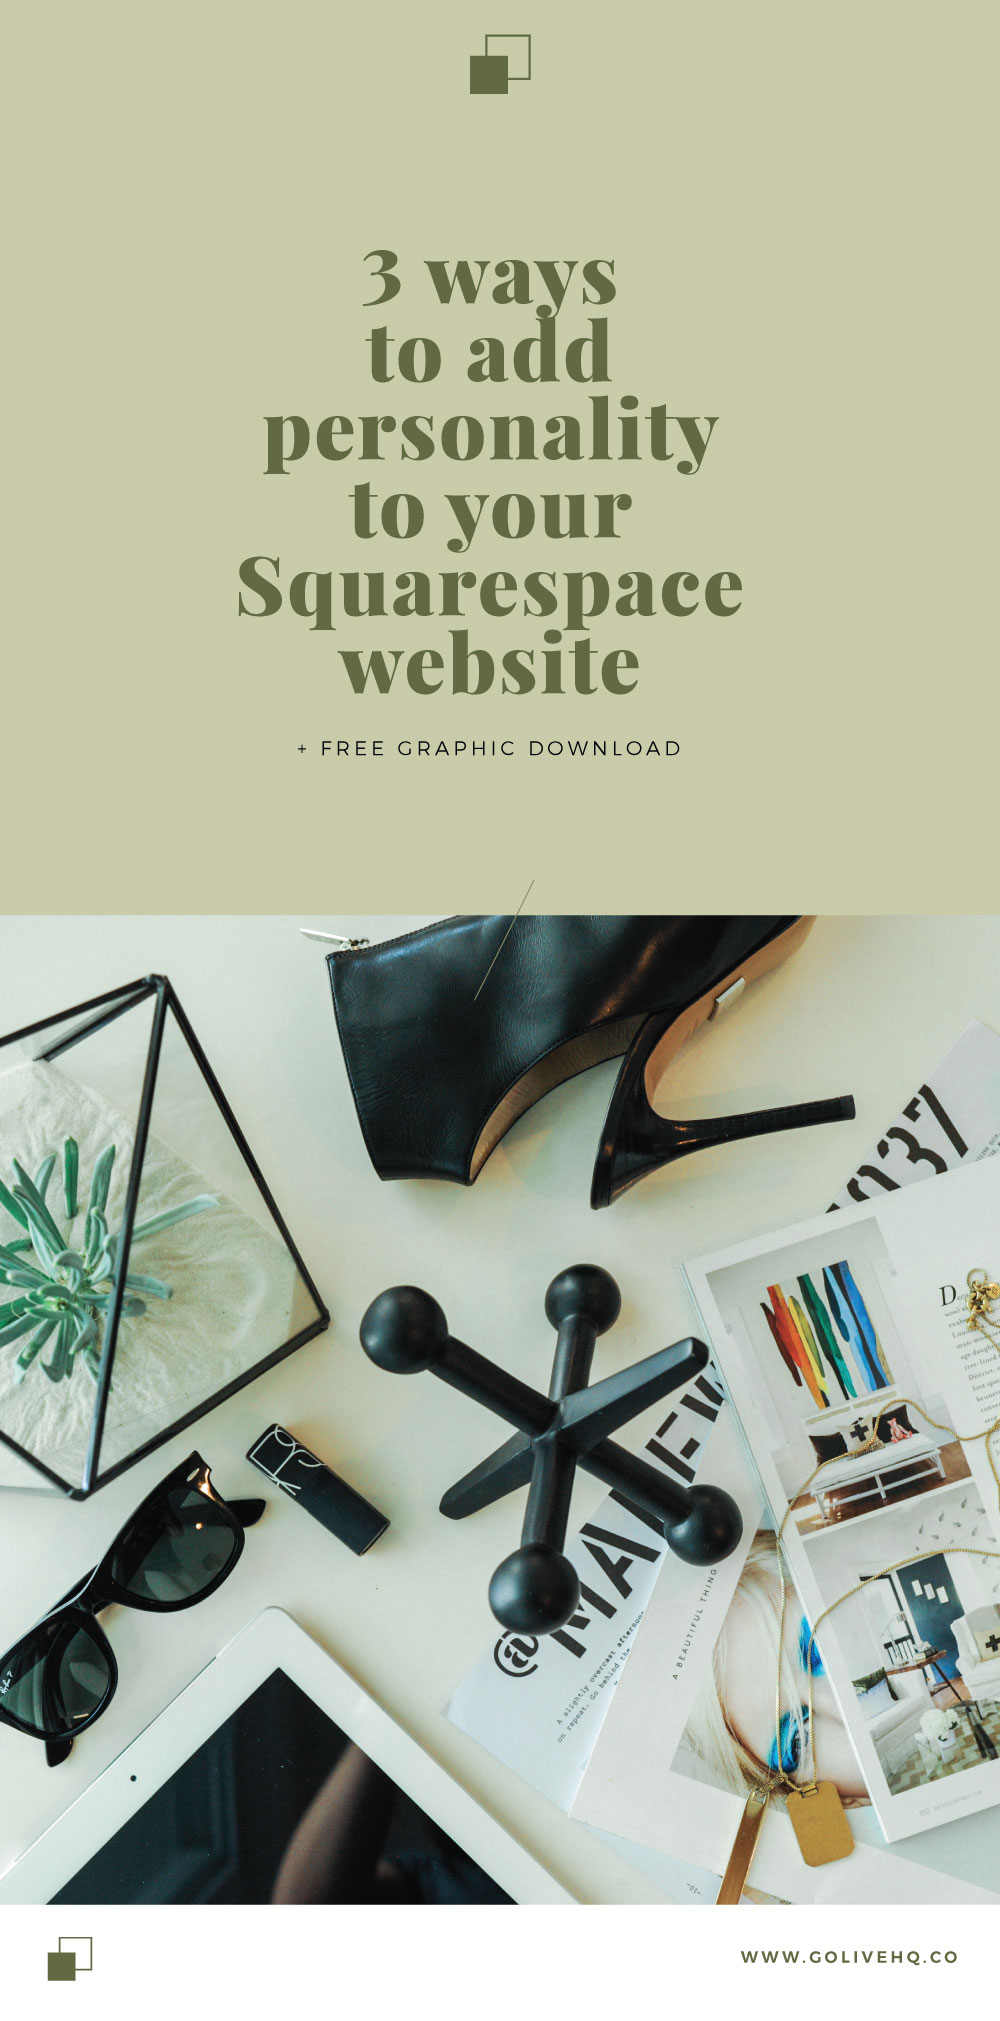 3 WAYS TO ADD PERSONALITY TO YOUR SQUARESPACE SITE + FREE GRAPHIC DOWNLOAD